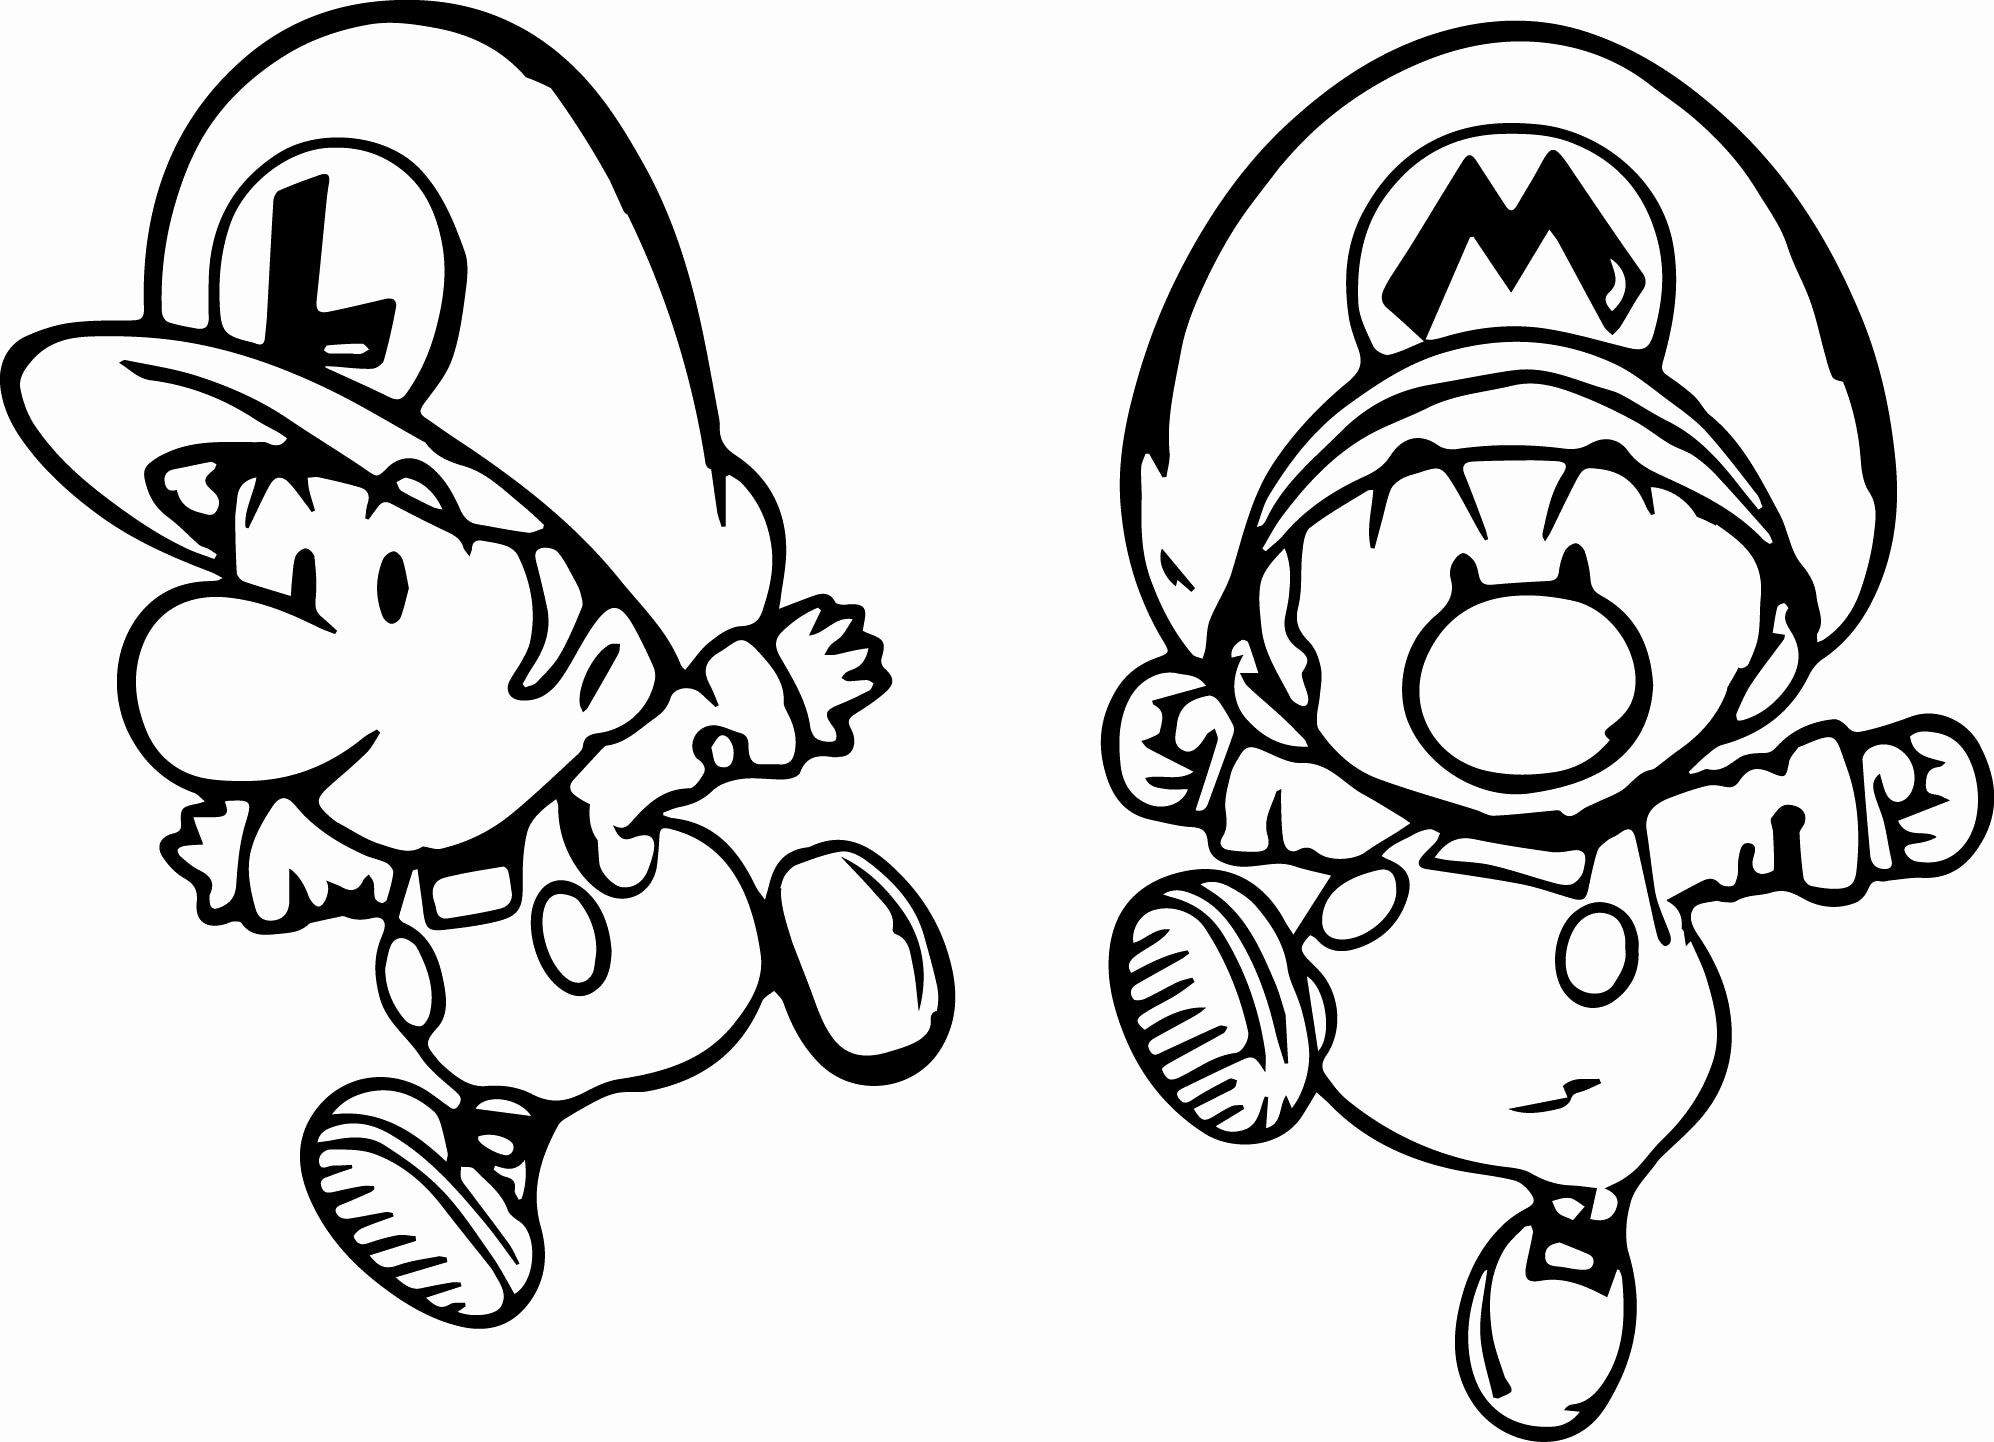 Mario And Luigi Coloring Page Lovely Mario Odyssey Coloring Pages Printable Super Mario Coloring Pages Mario Coloring Pages Minion Coloring Pages